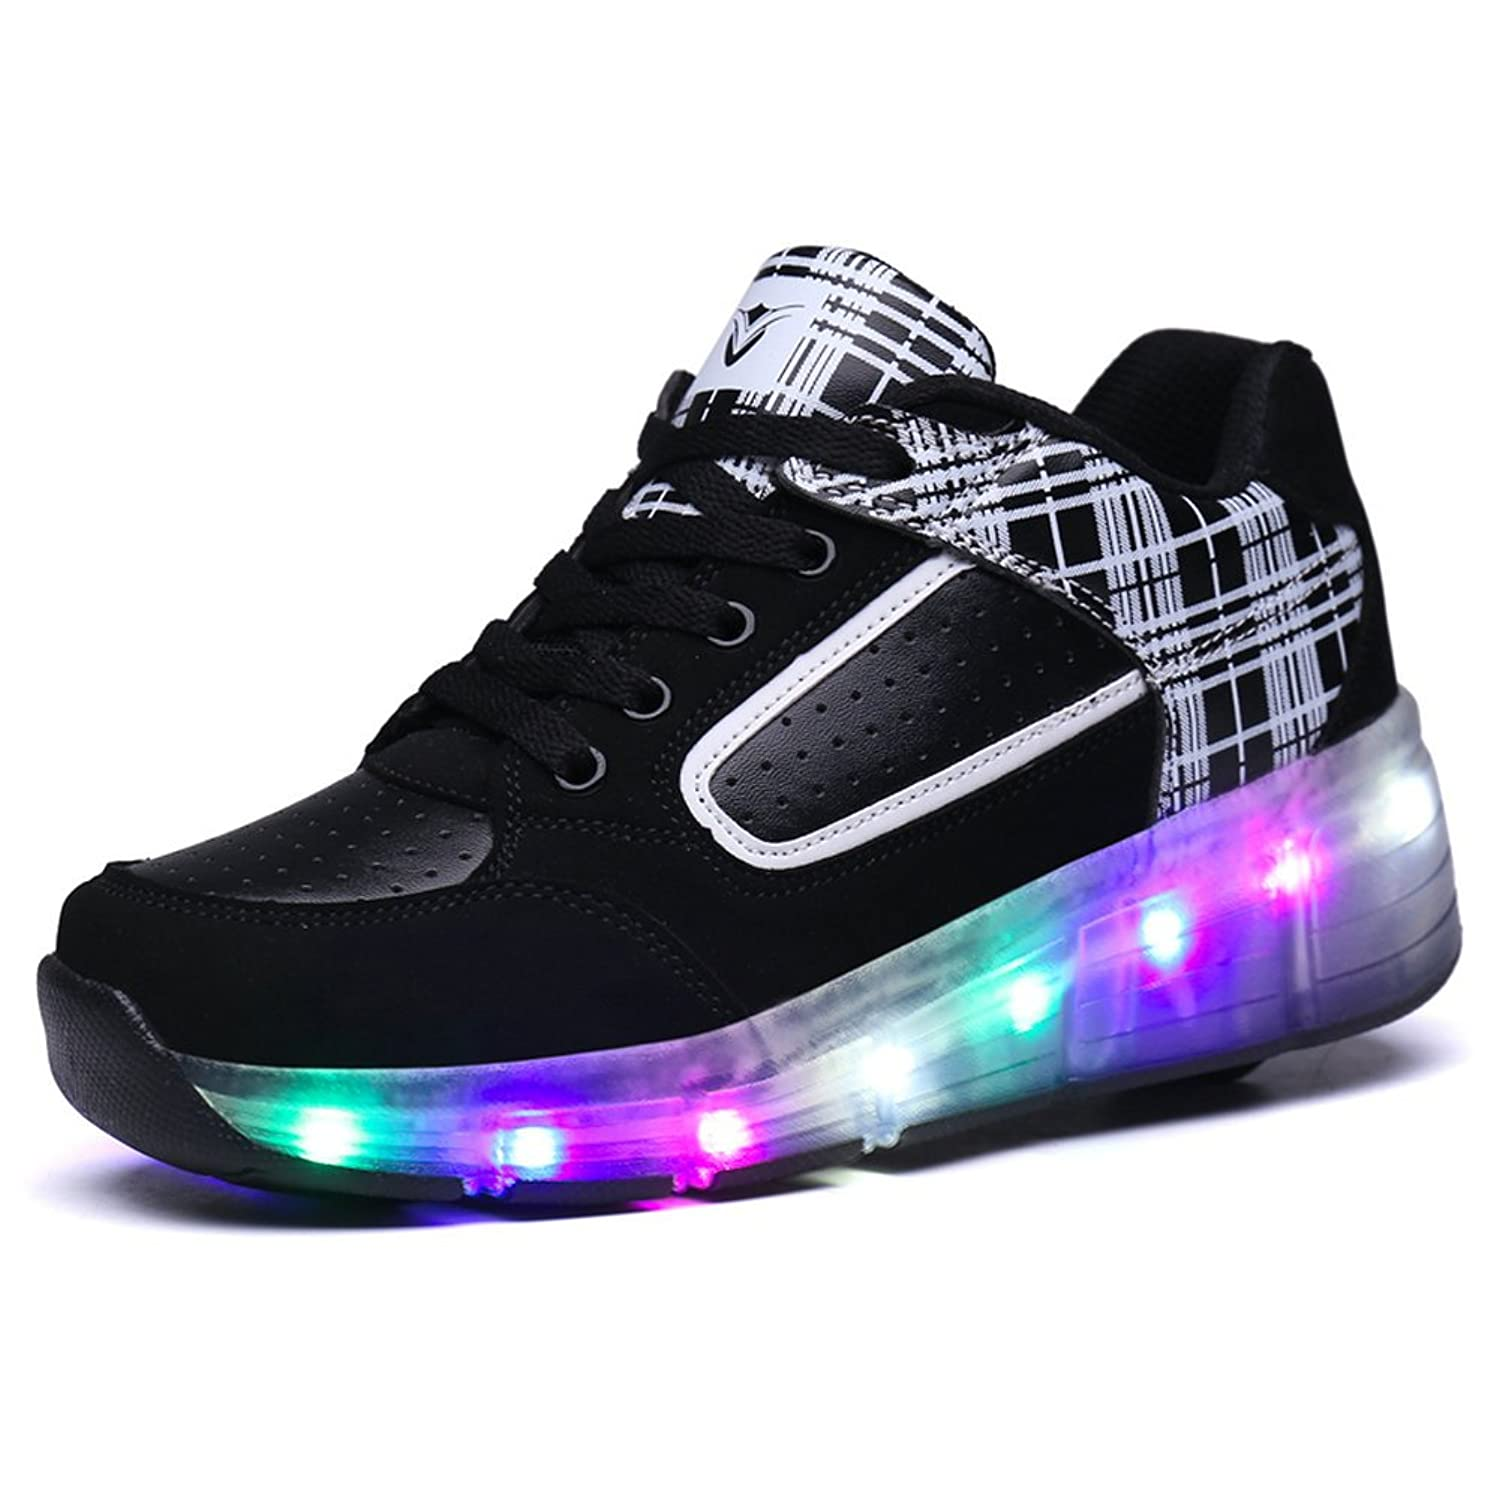 Roller shoes london - Girls Boys Led Wheel Roller Shoes Retractable Roller Skate Shoes Kids Sneakers Amazon Co Uk Shoes Bags